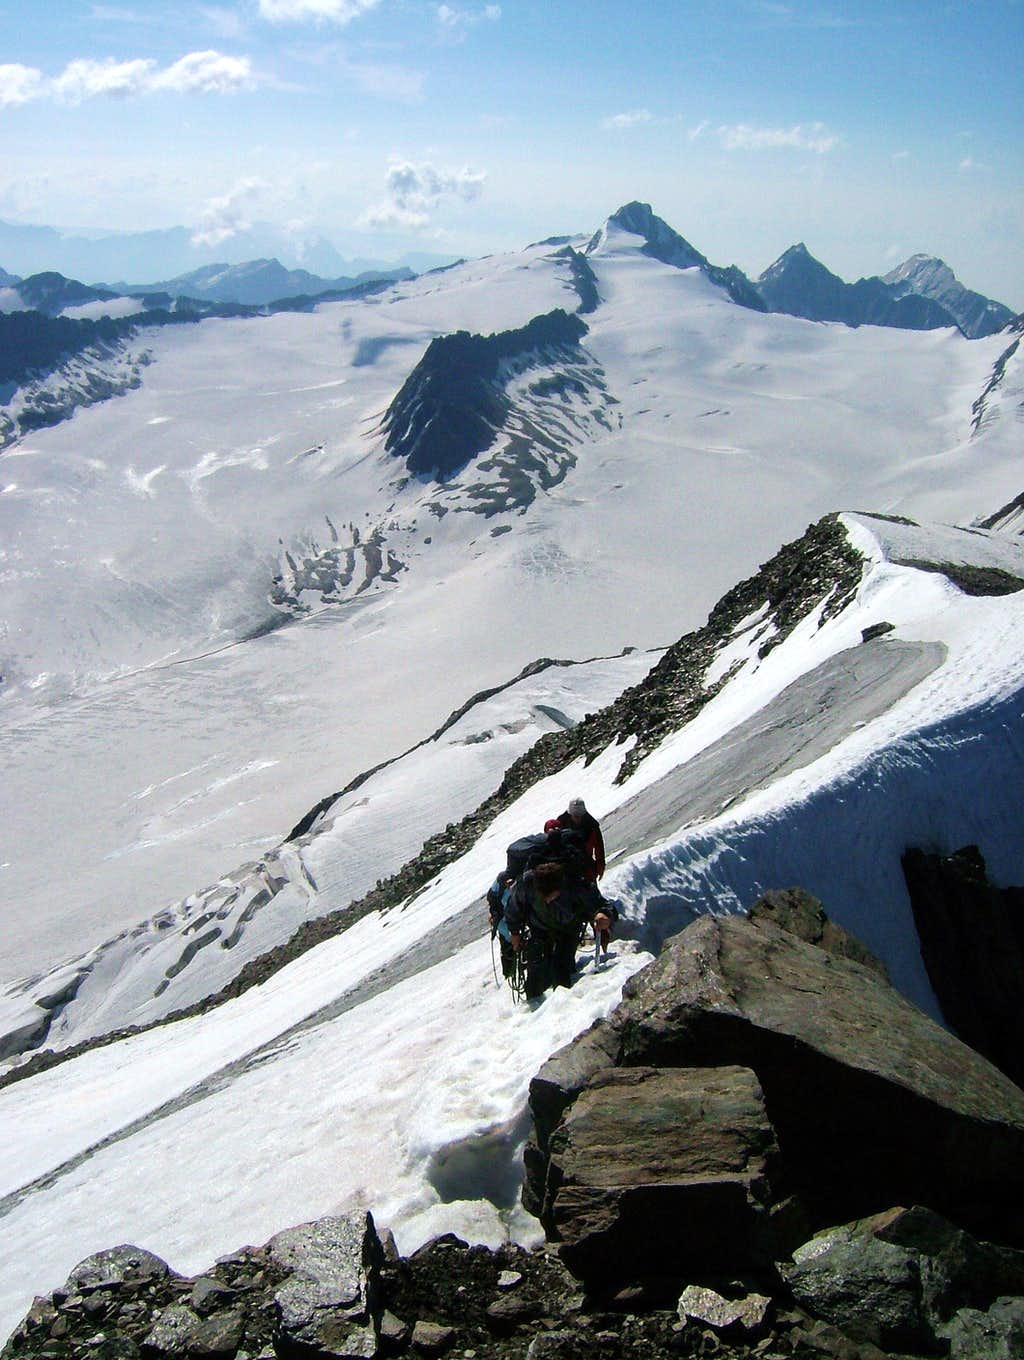 A group reaching the summit